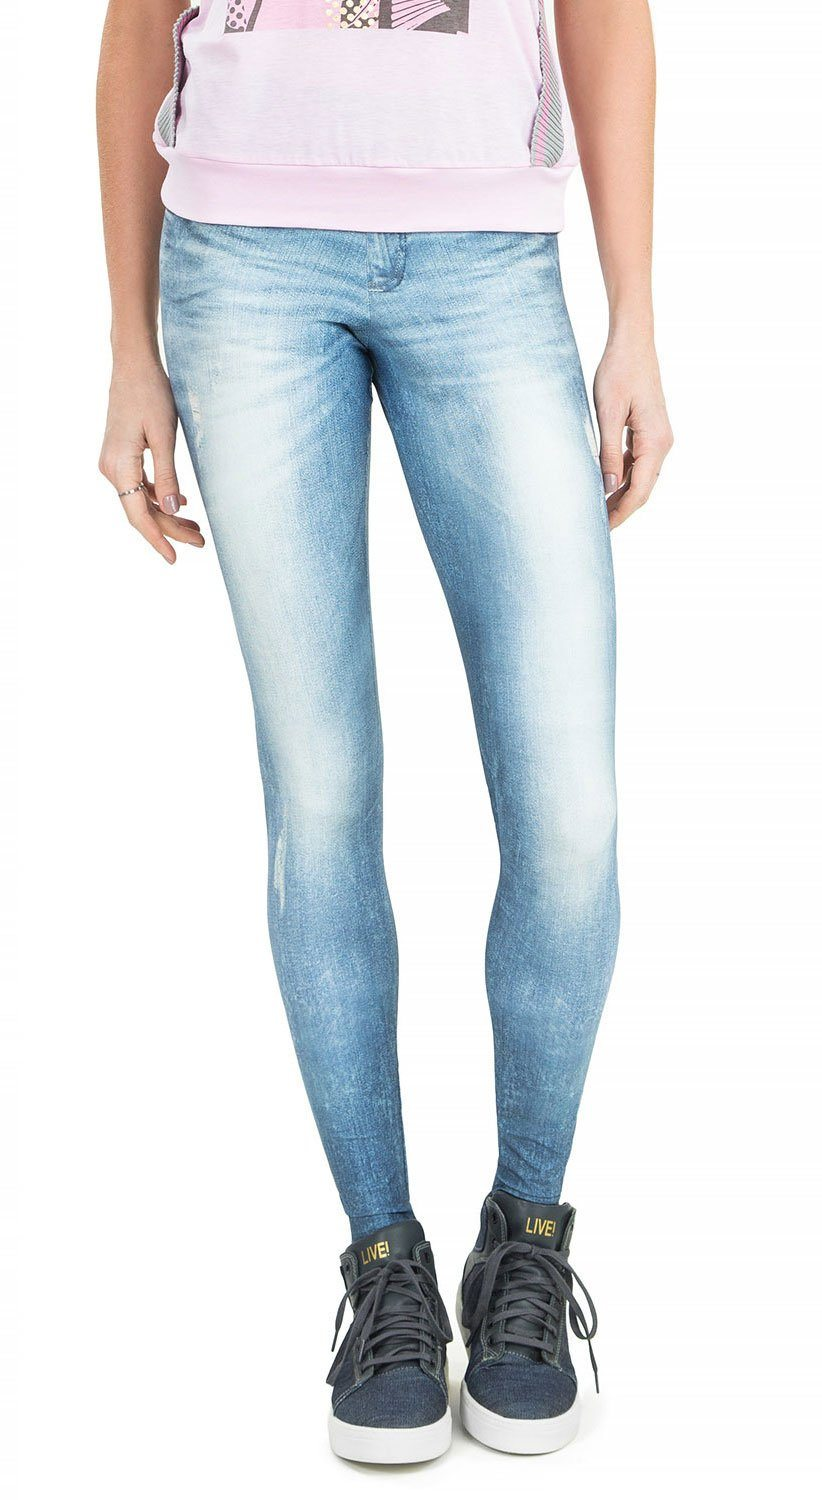 Brazilian Jean Legging - Technological Blue Denim Pants